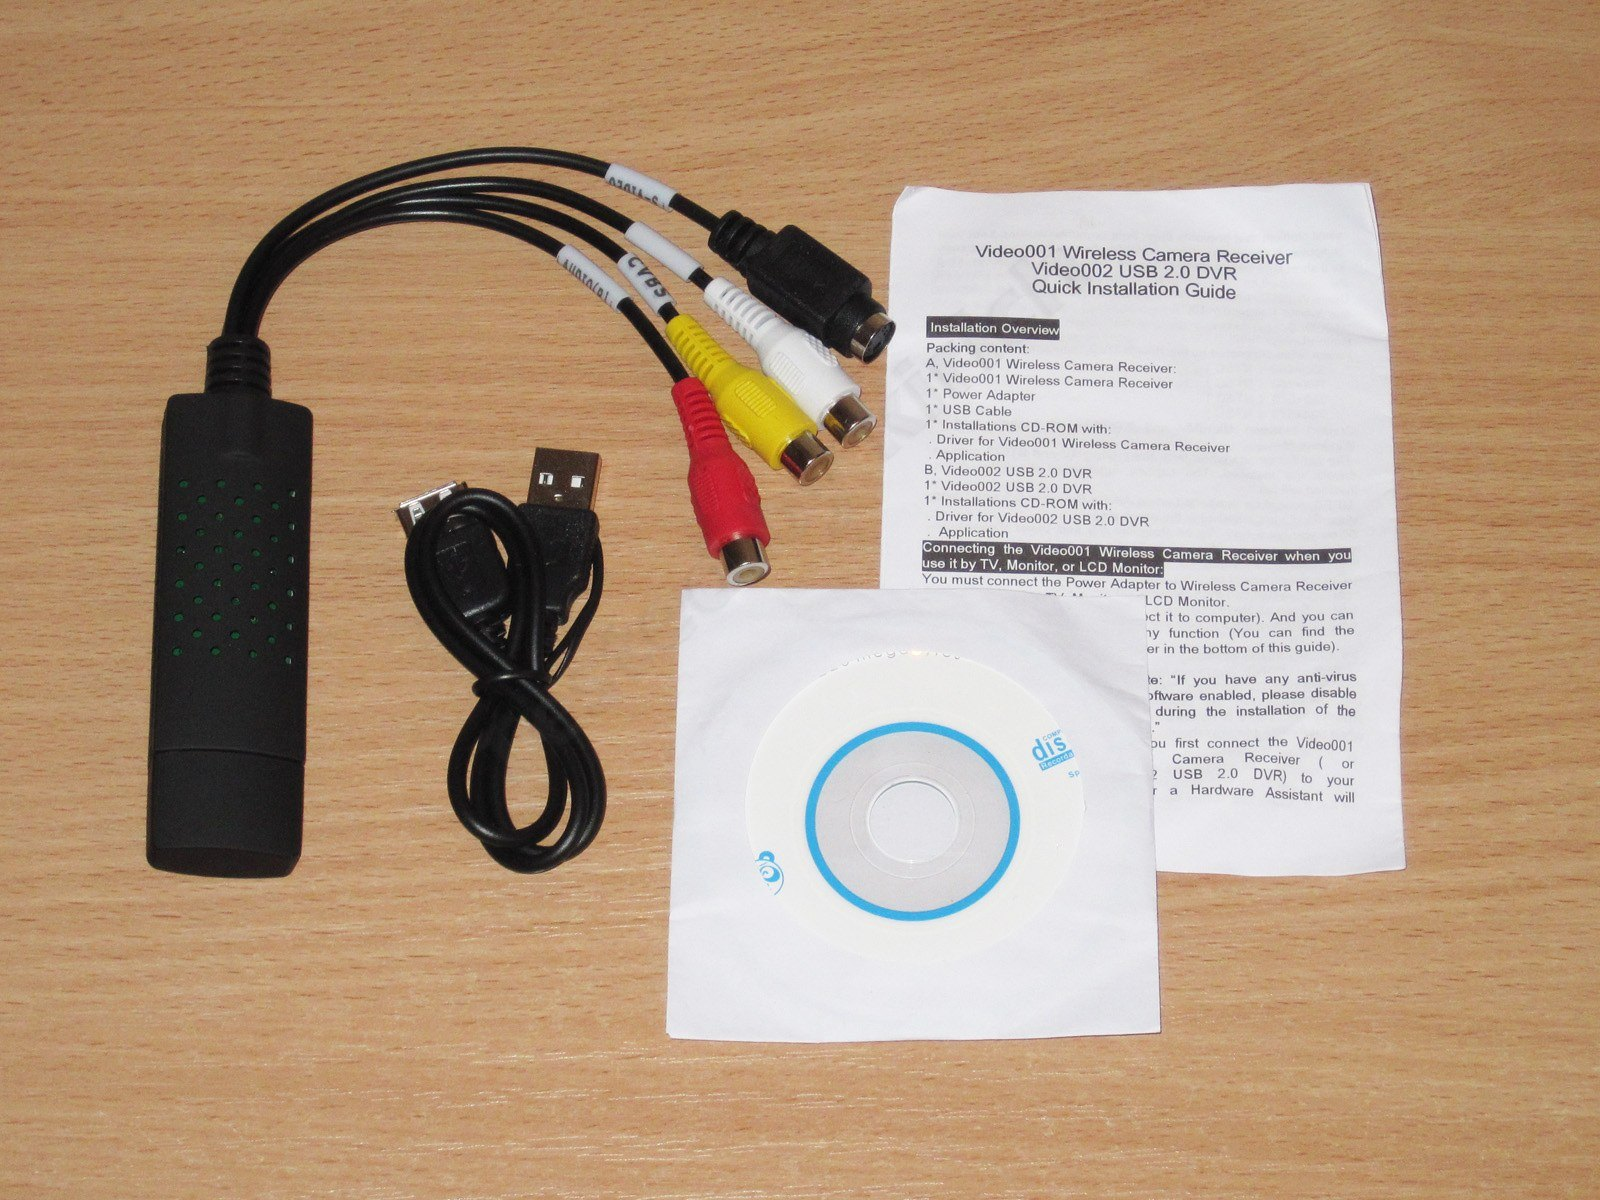 VIDEO001 WIRELESS CAMERA RECEIVER DRIVER DOWNLOAD